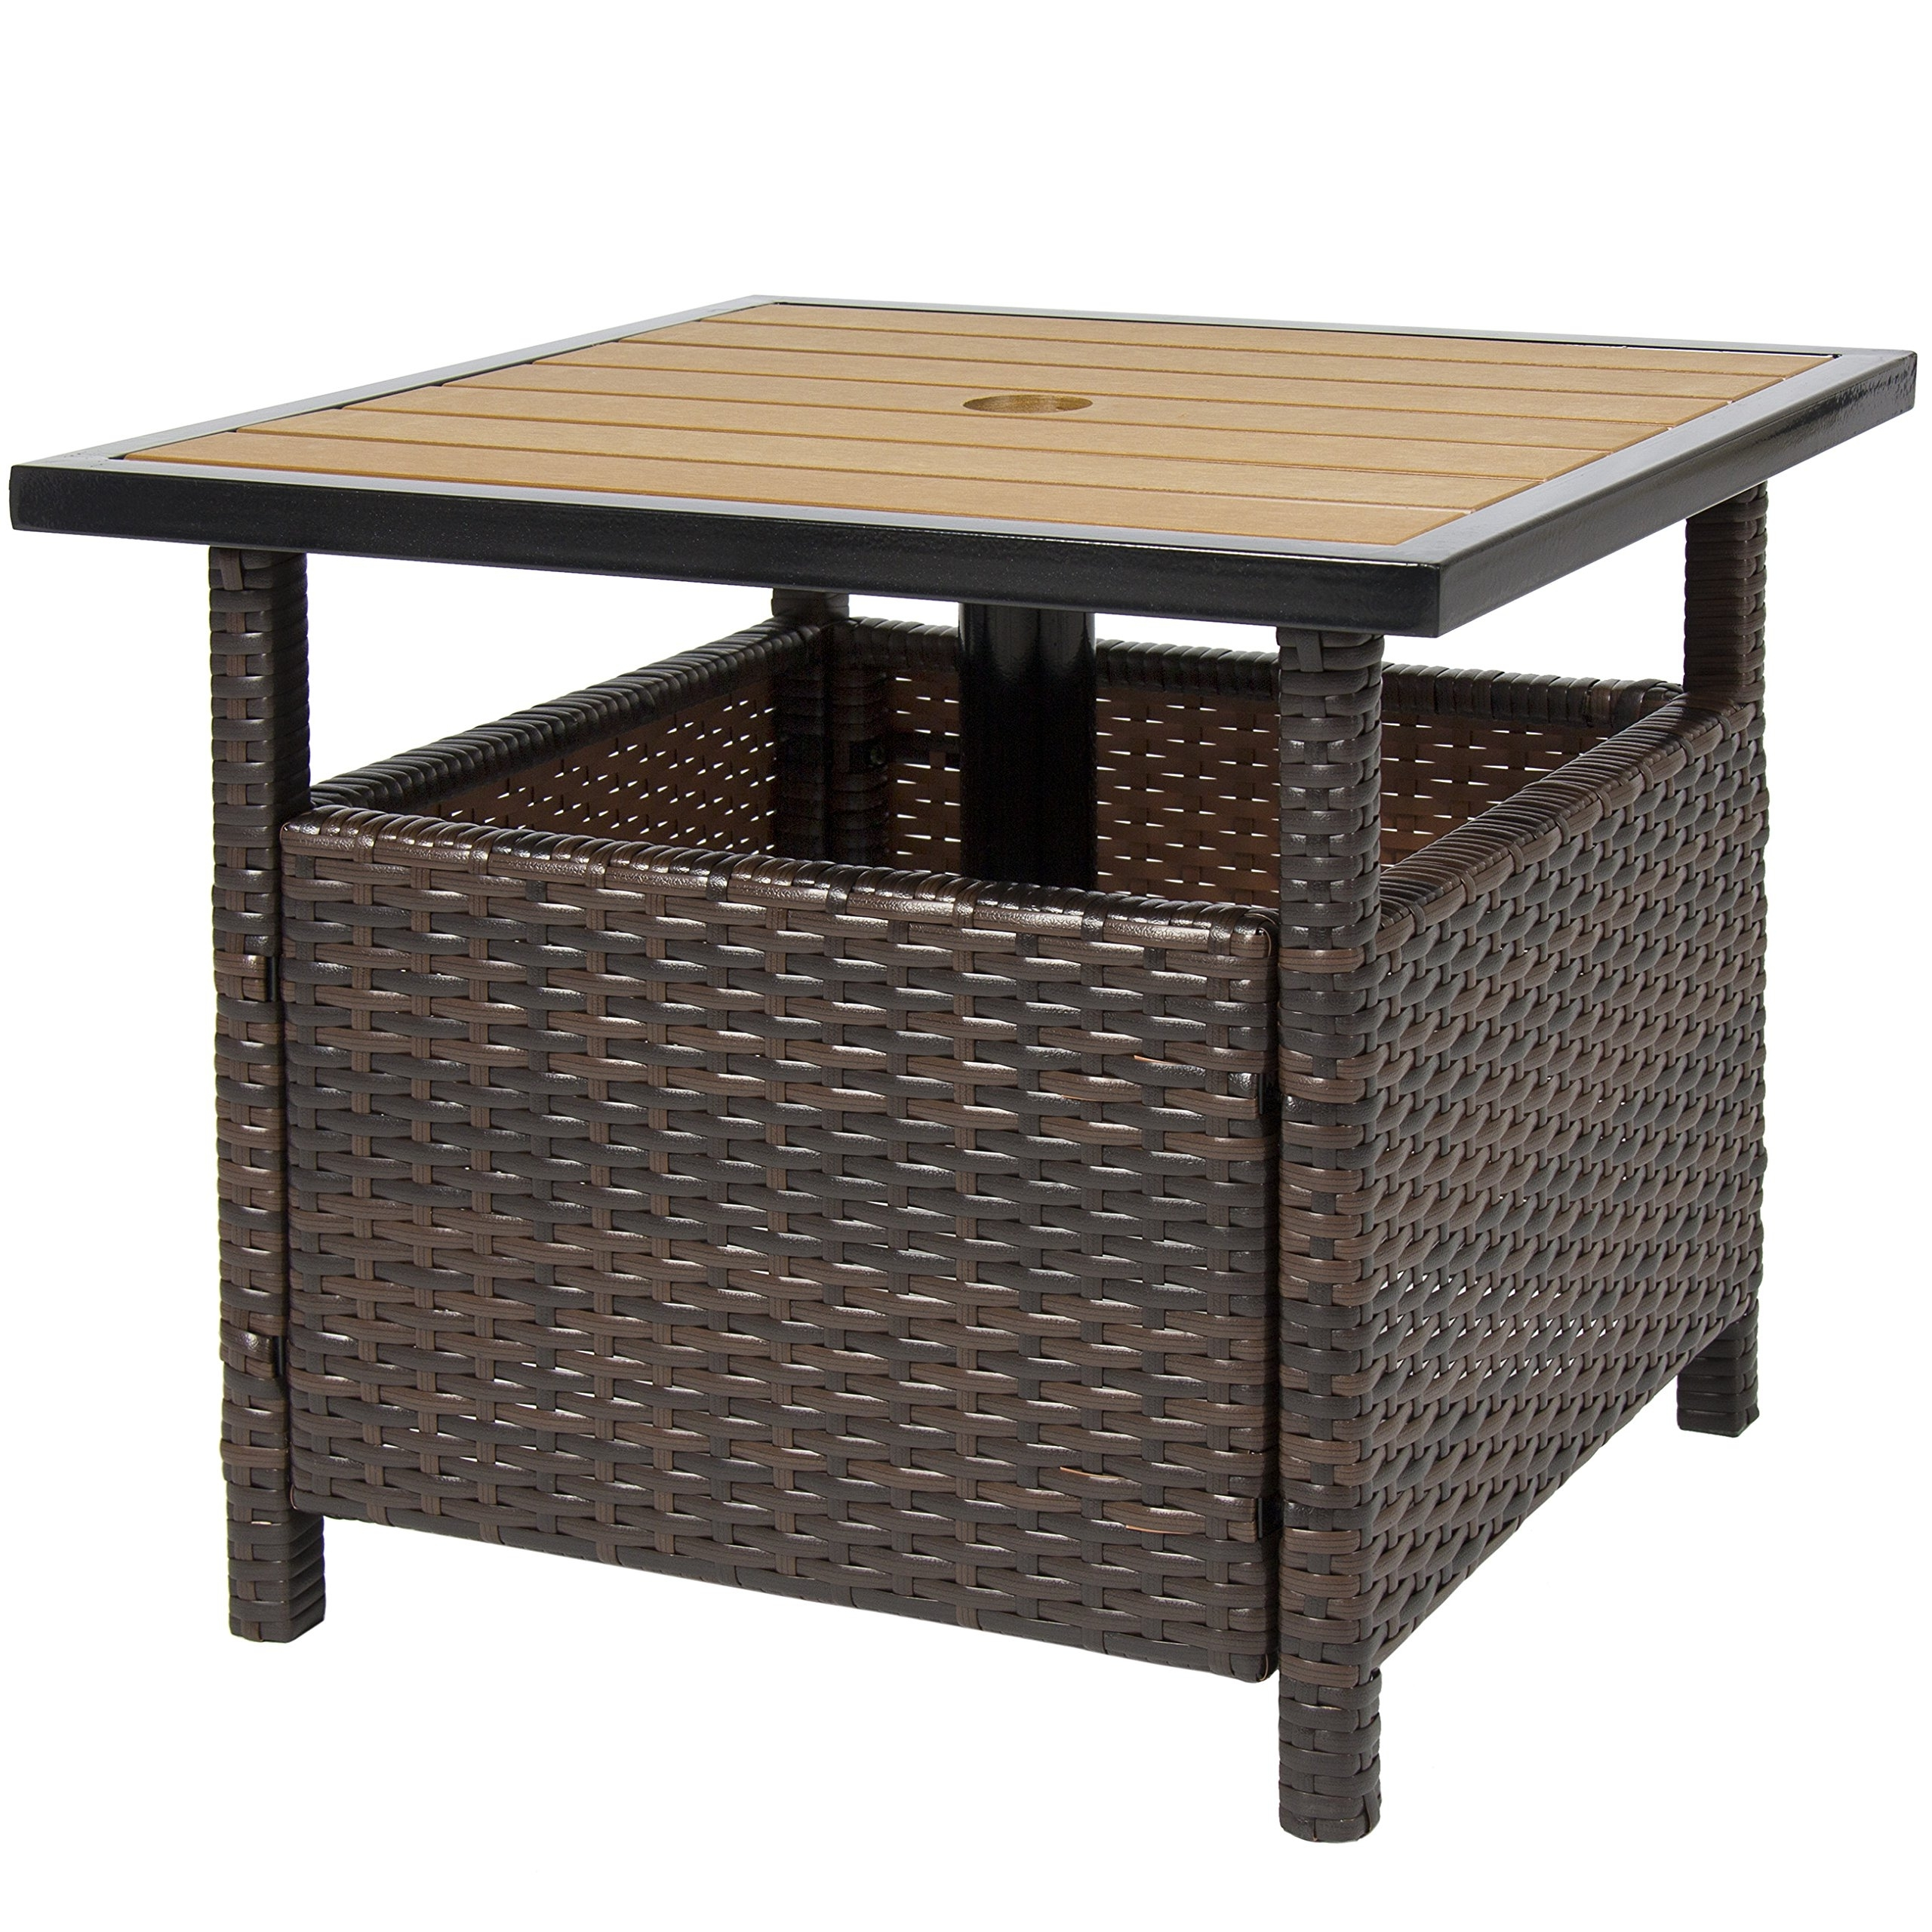 2019 Patio Umbrella Side Tables Within Cheap Outdoor Umbrella Stand Side Table, Find Outdoor Umbrella Stand (View 12 of 20)